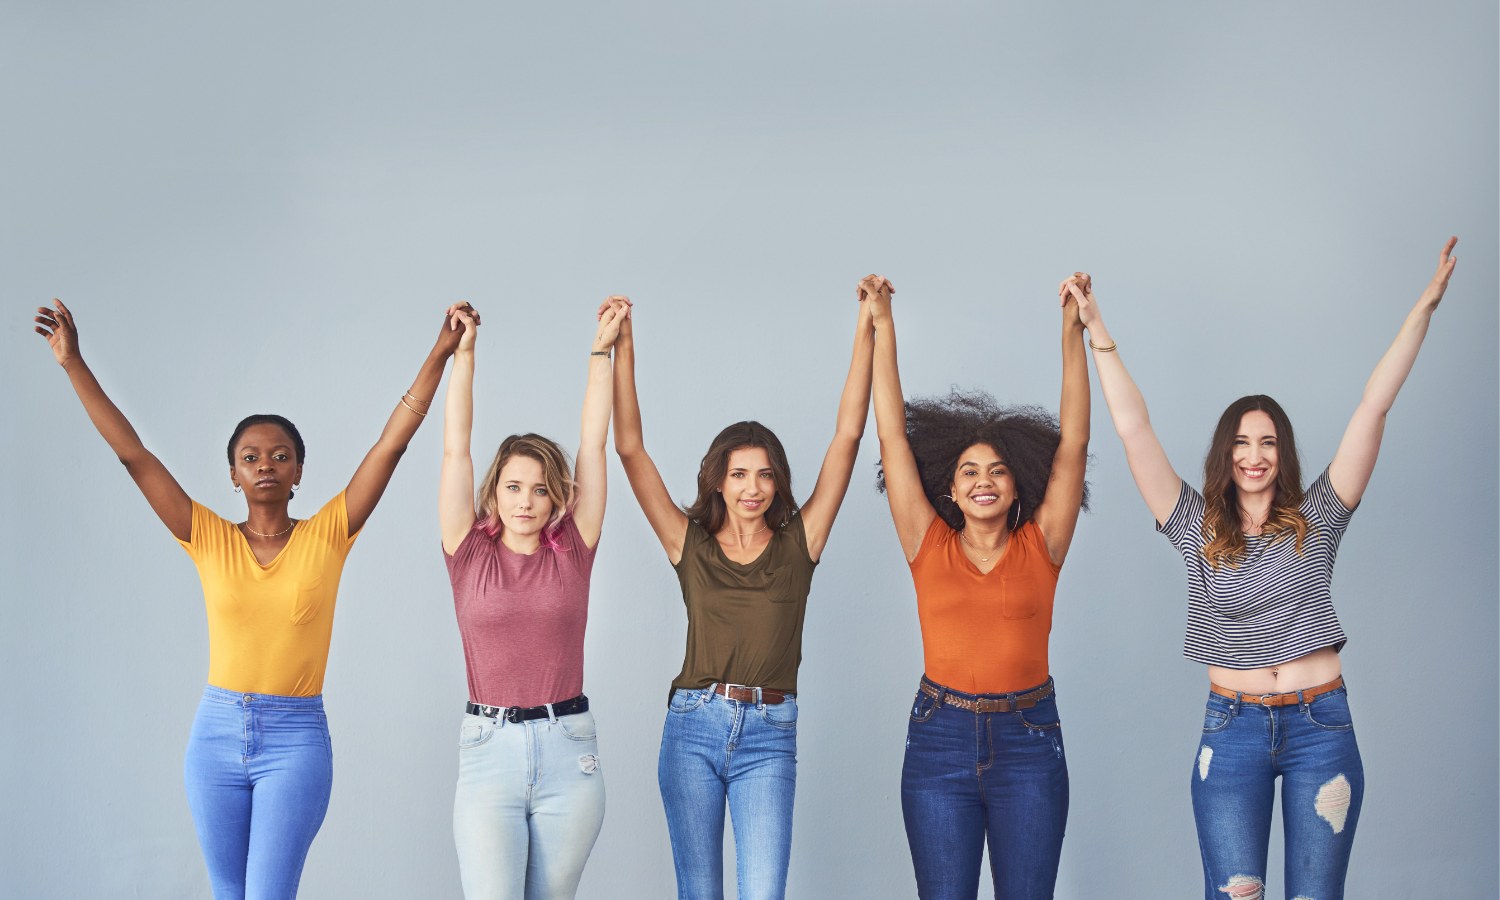 5 women hands joined raised above their heads in unity